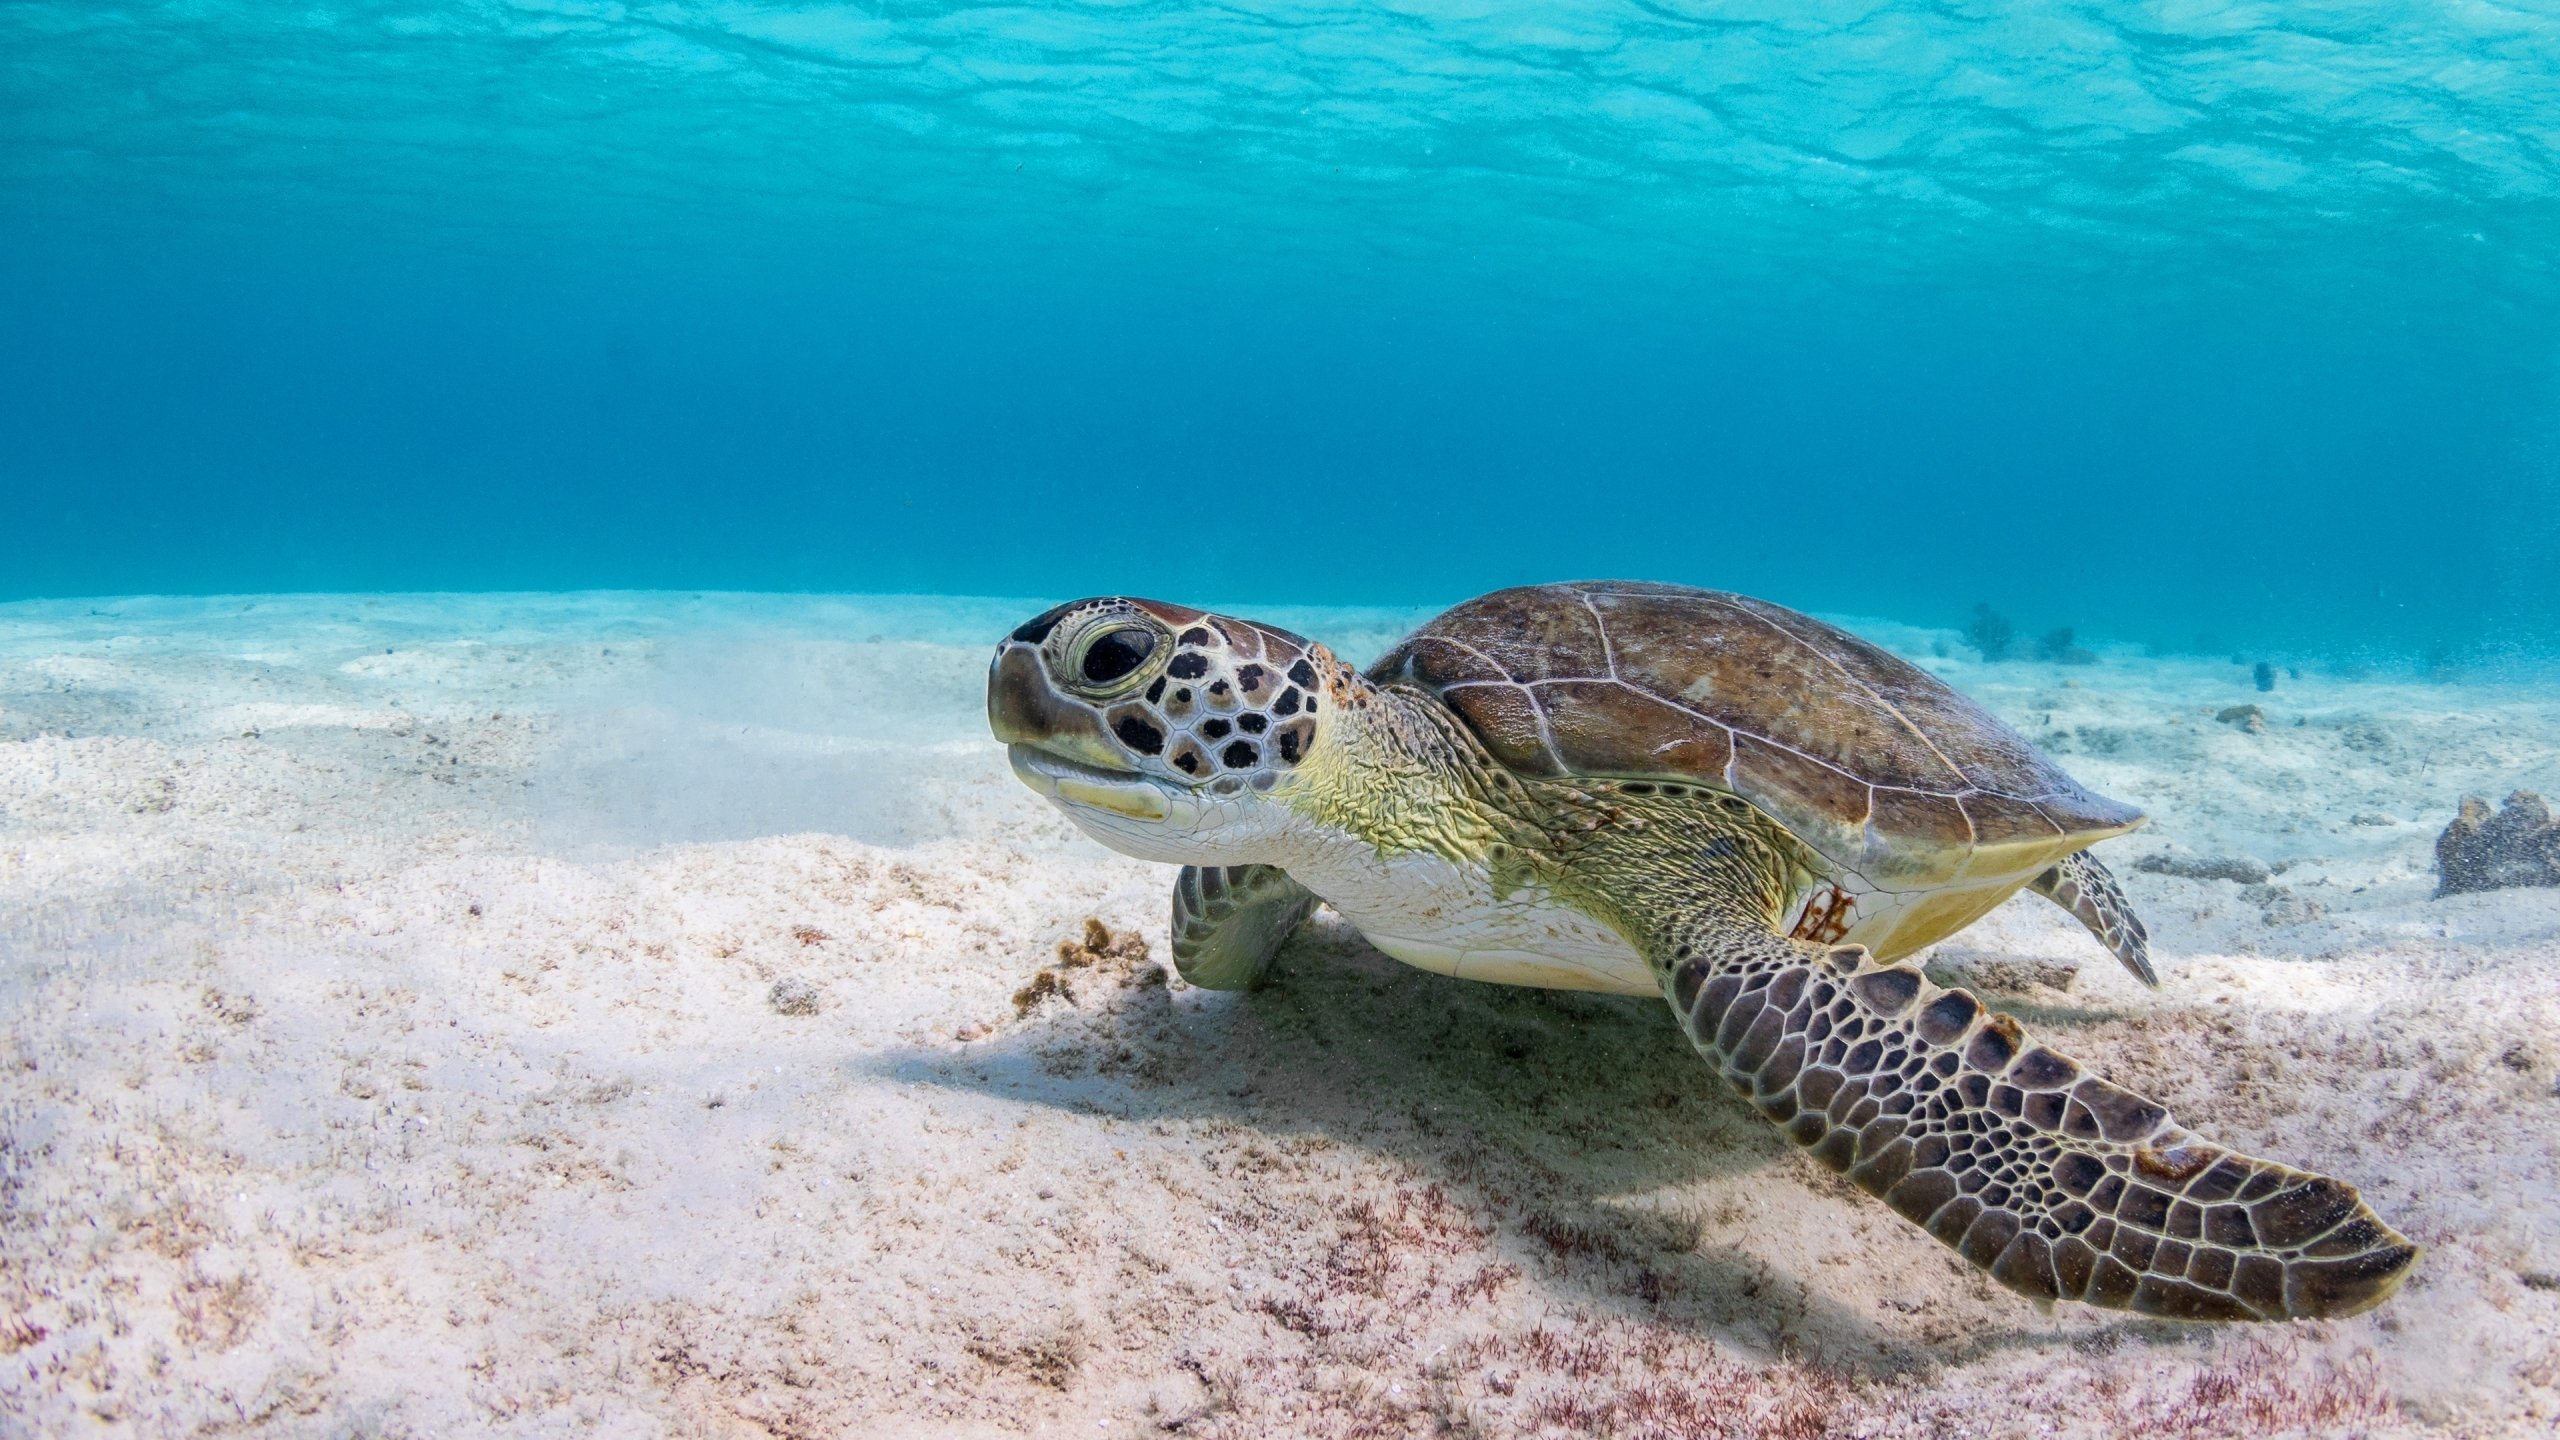 Image: Turtle, carapace, seabed